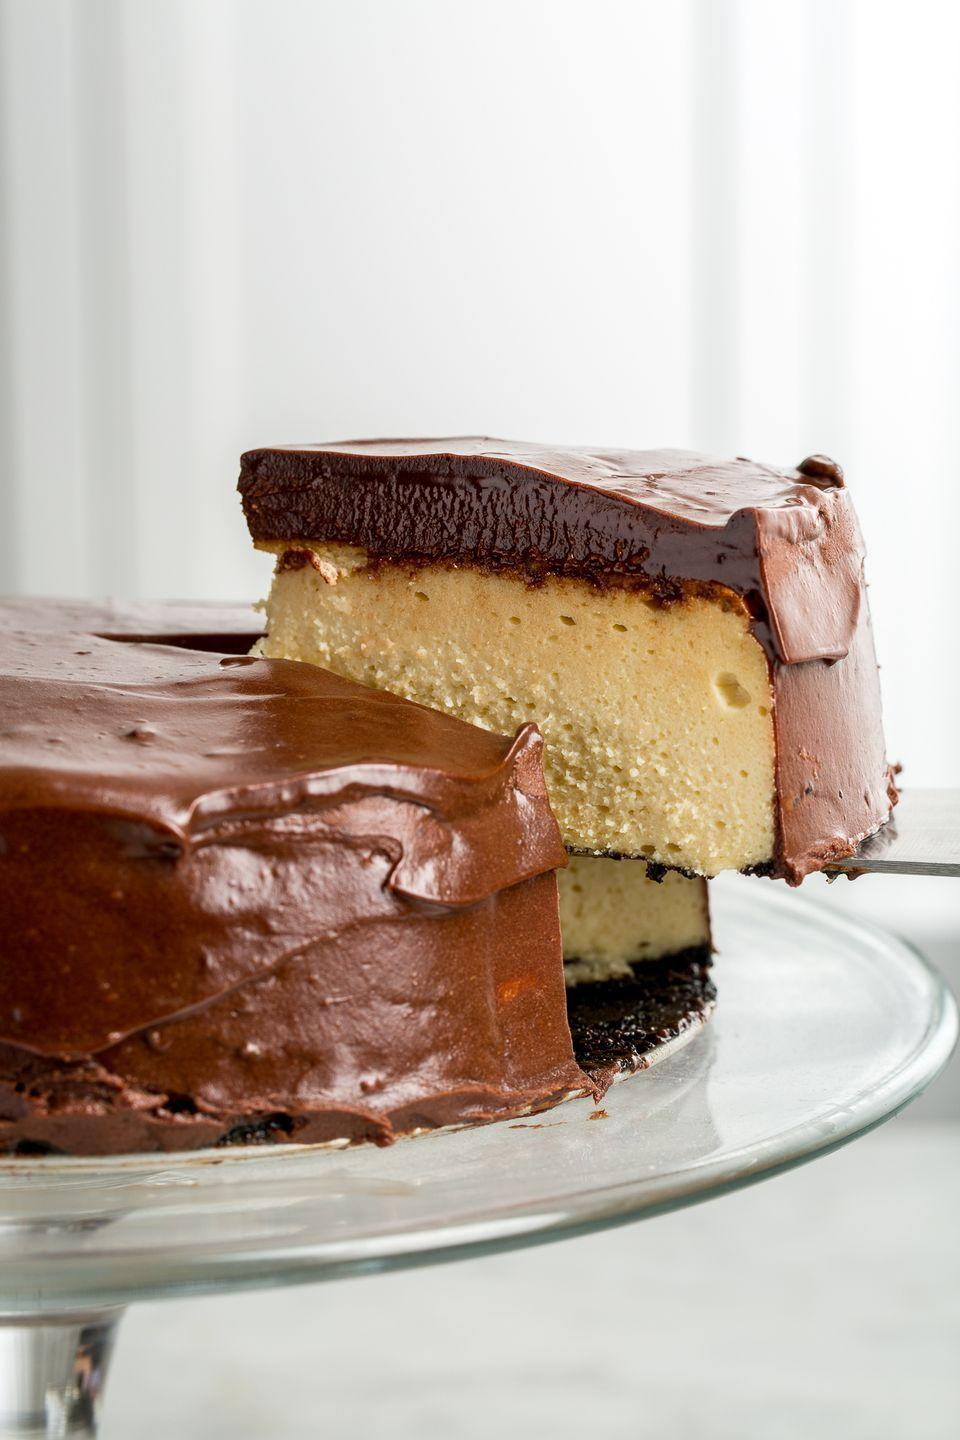 """<p>What. a. beaut.</p><p>Get the recipe from <a href=""""https://www.delish.com/cooking/recipe-ideas/recipes/a46303/baileys-cheesecake-recipe/"""" rel=""""nofollow noopener"""" target=""""_blank"""" data-ylk=""""slk:Delish"""" class=""""link rapid-noclick-resp"""">Delish</a>.</p>"""